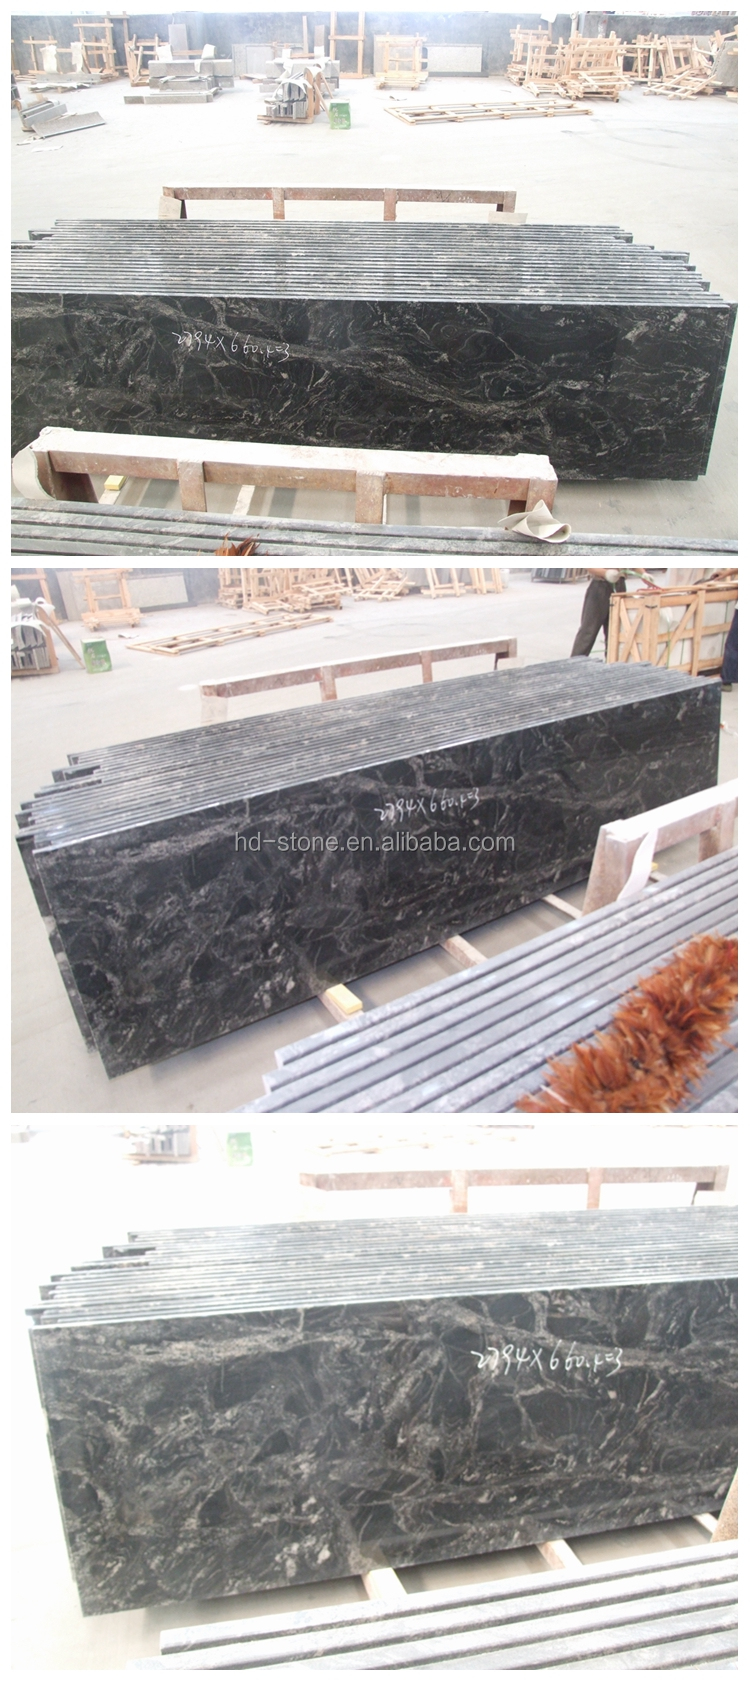 India Black Granite Ganges Black Granite Kitchen Countertop Granite Countertop